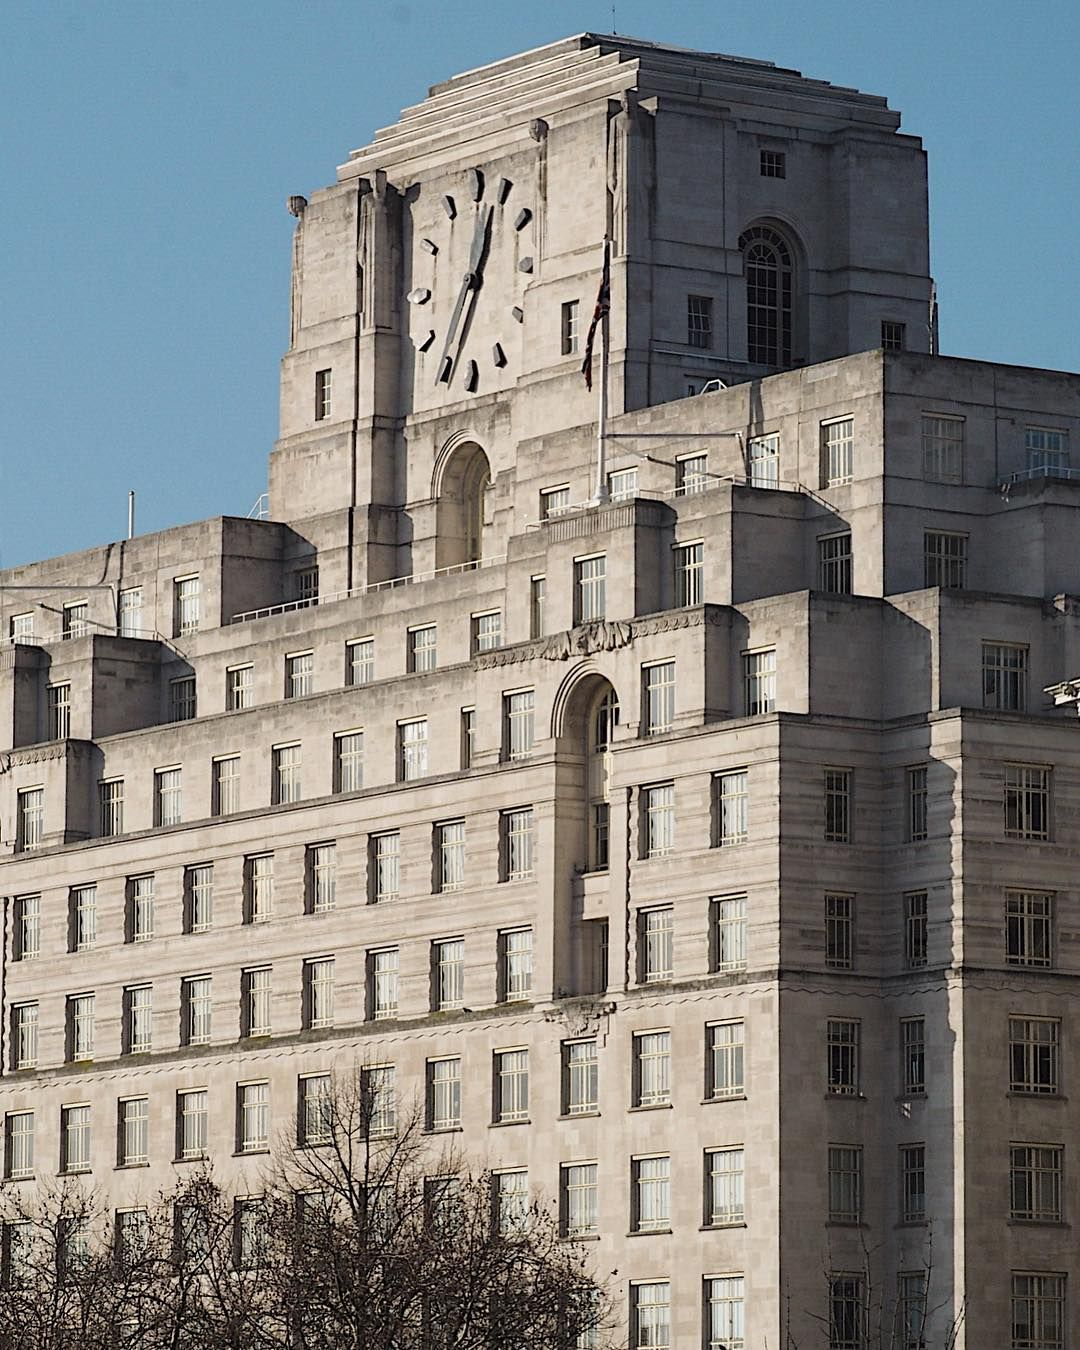 London's Biggest Clock Tower, former BP office, so it's